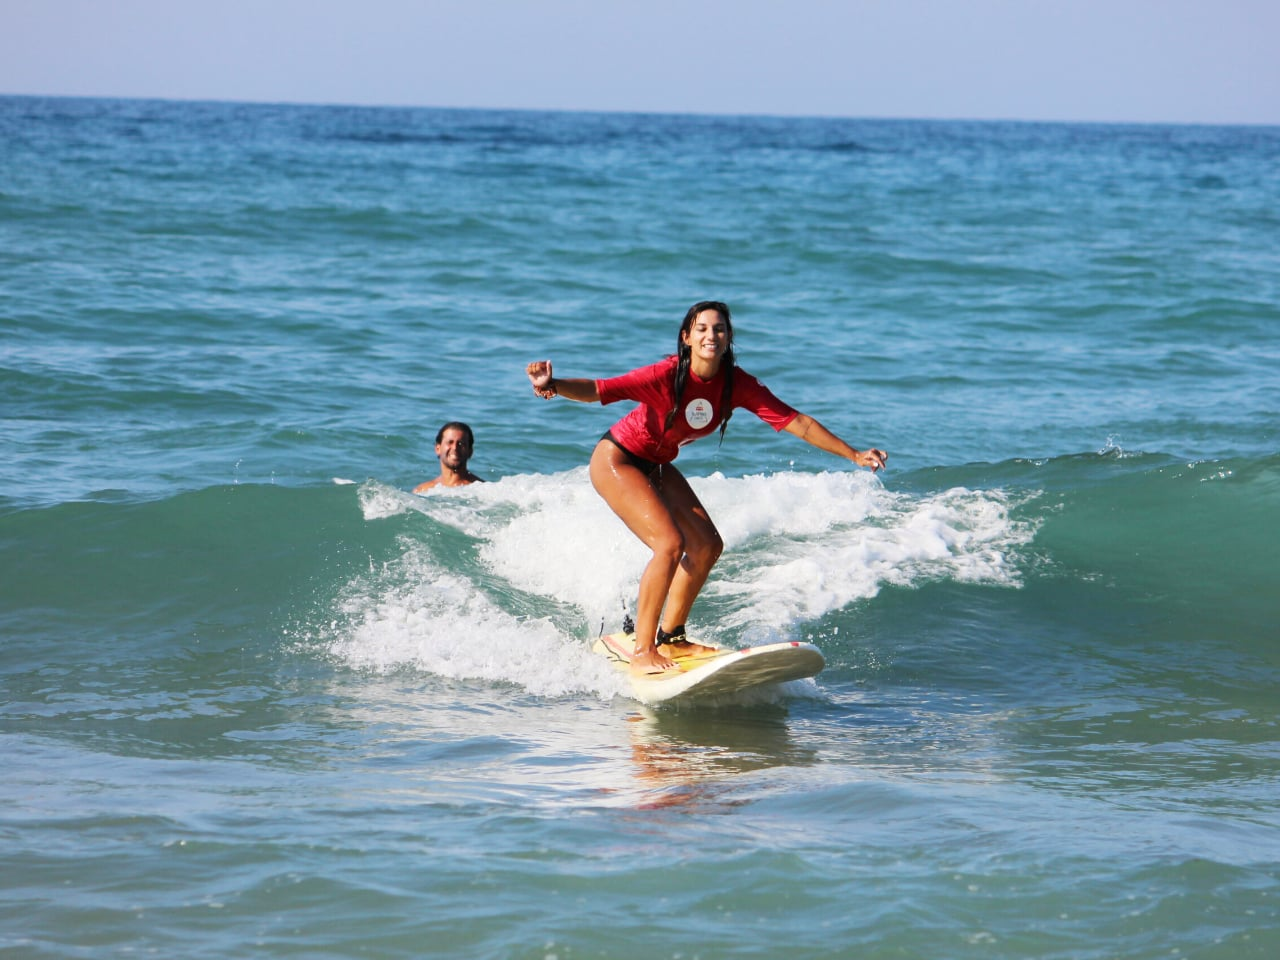 surf lessons chania crete, surfing lessons chania crete, sup lessons chania crete, best surfing club chania, where to surf chania crete, where to sup chania crete, best surf instructor chania crete